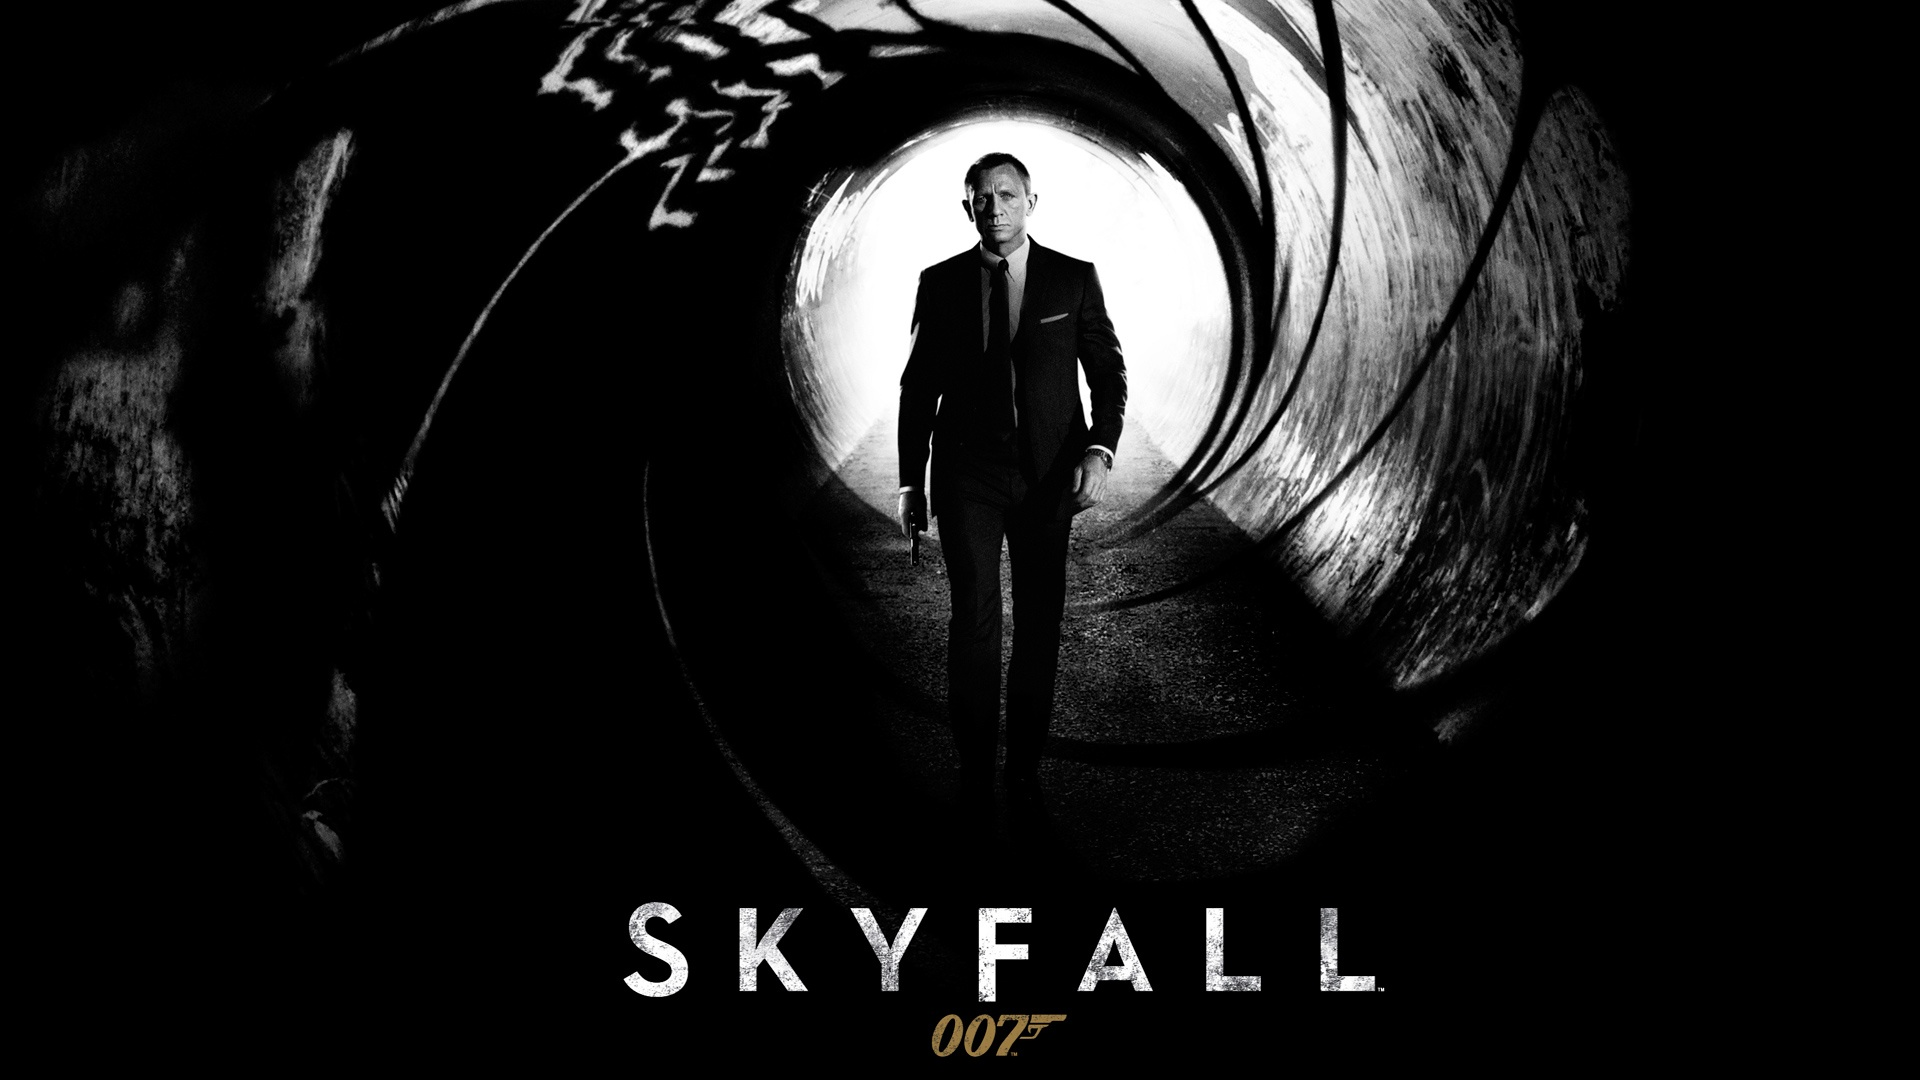 James Bond Iphone Wallpaper Skyfall Full Hd Wallpaper And Background 1920x1080 Id